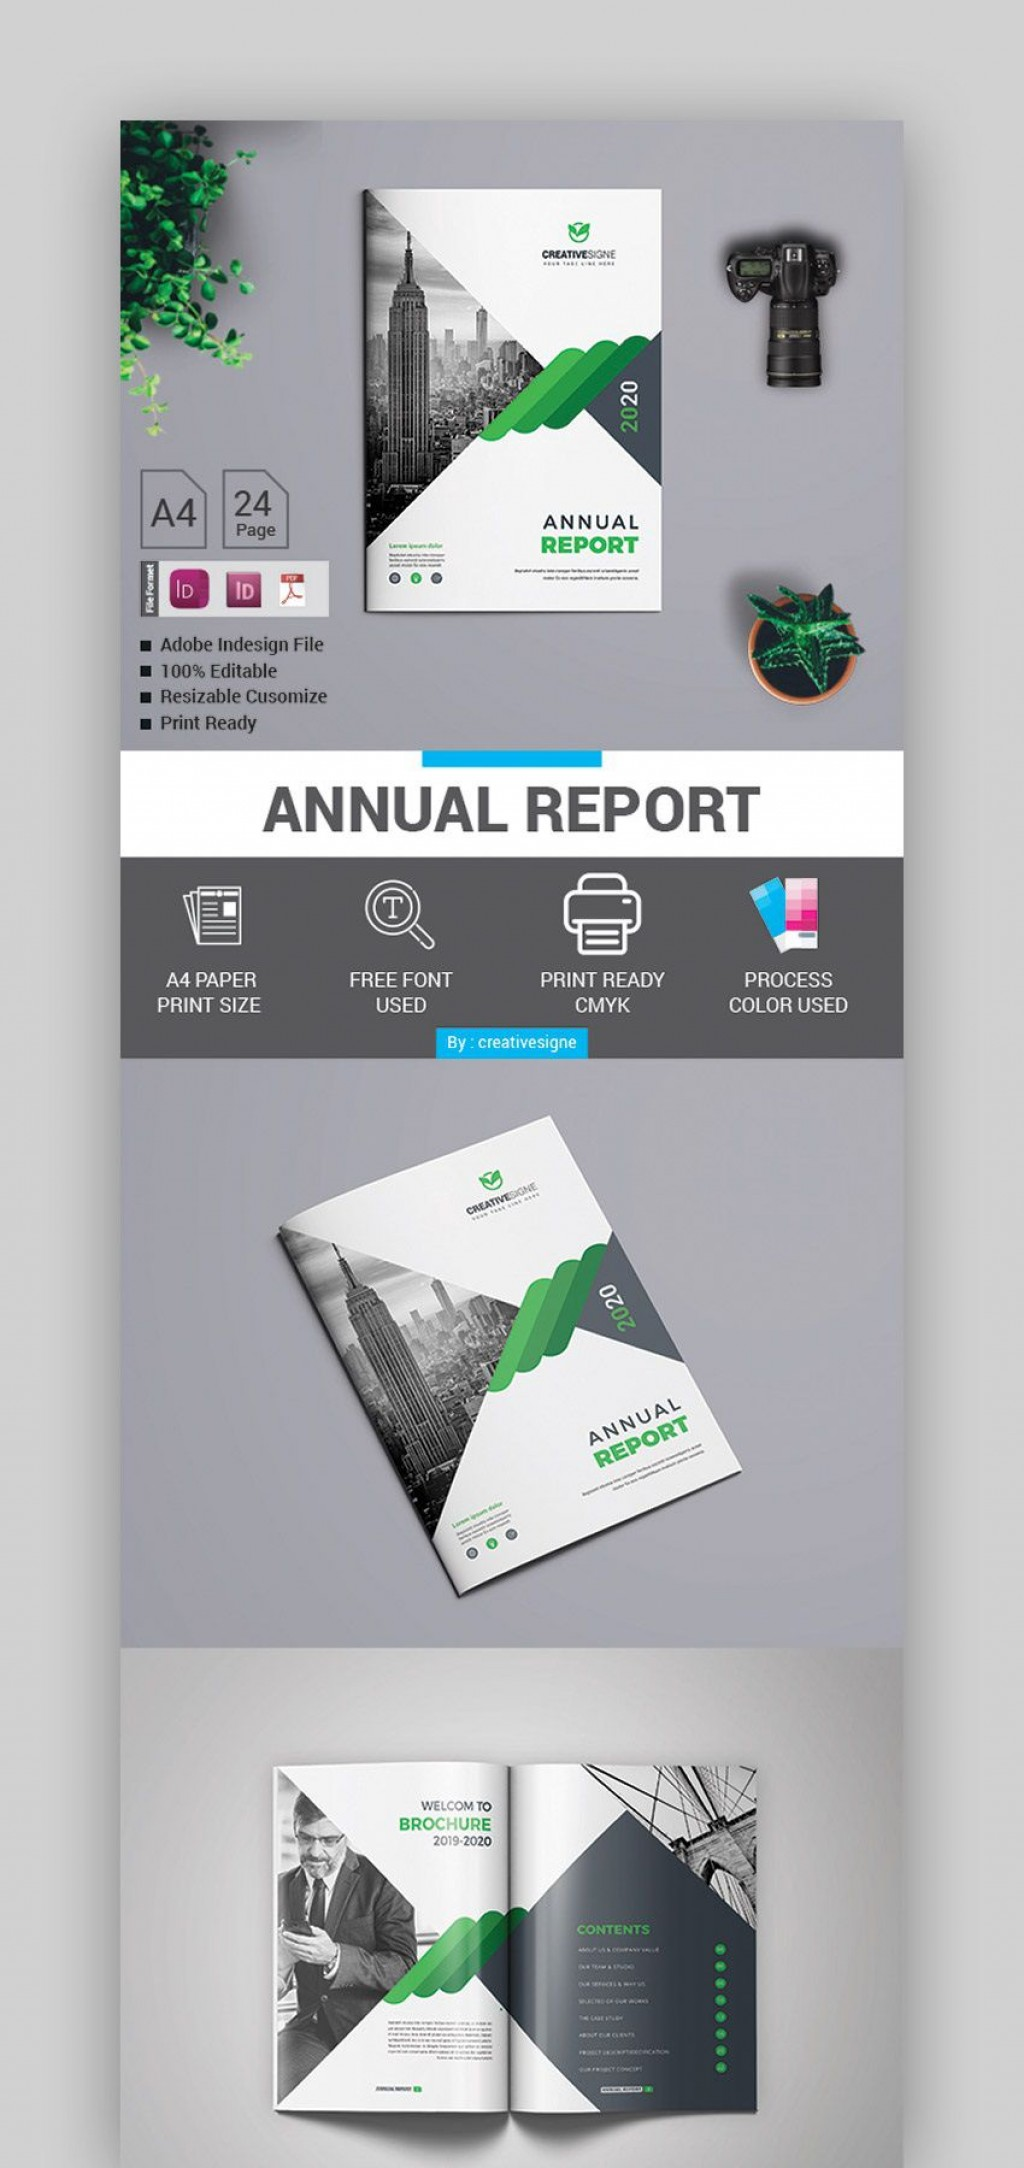 003 Top Free Adobe Indesign Annual Report Template Sample Large